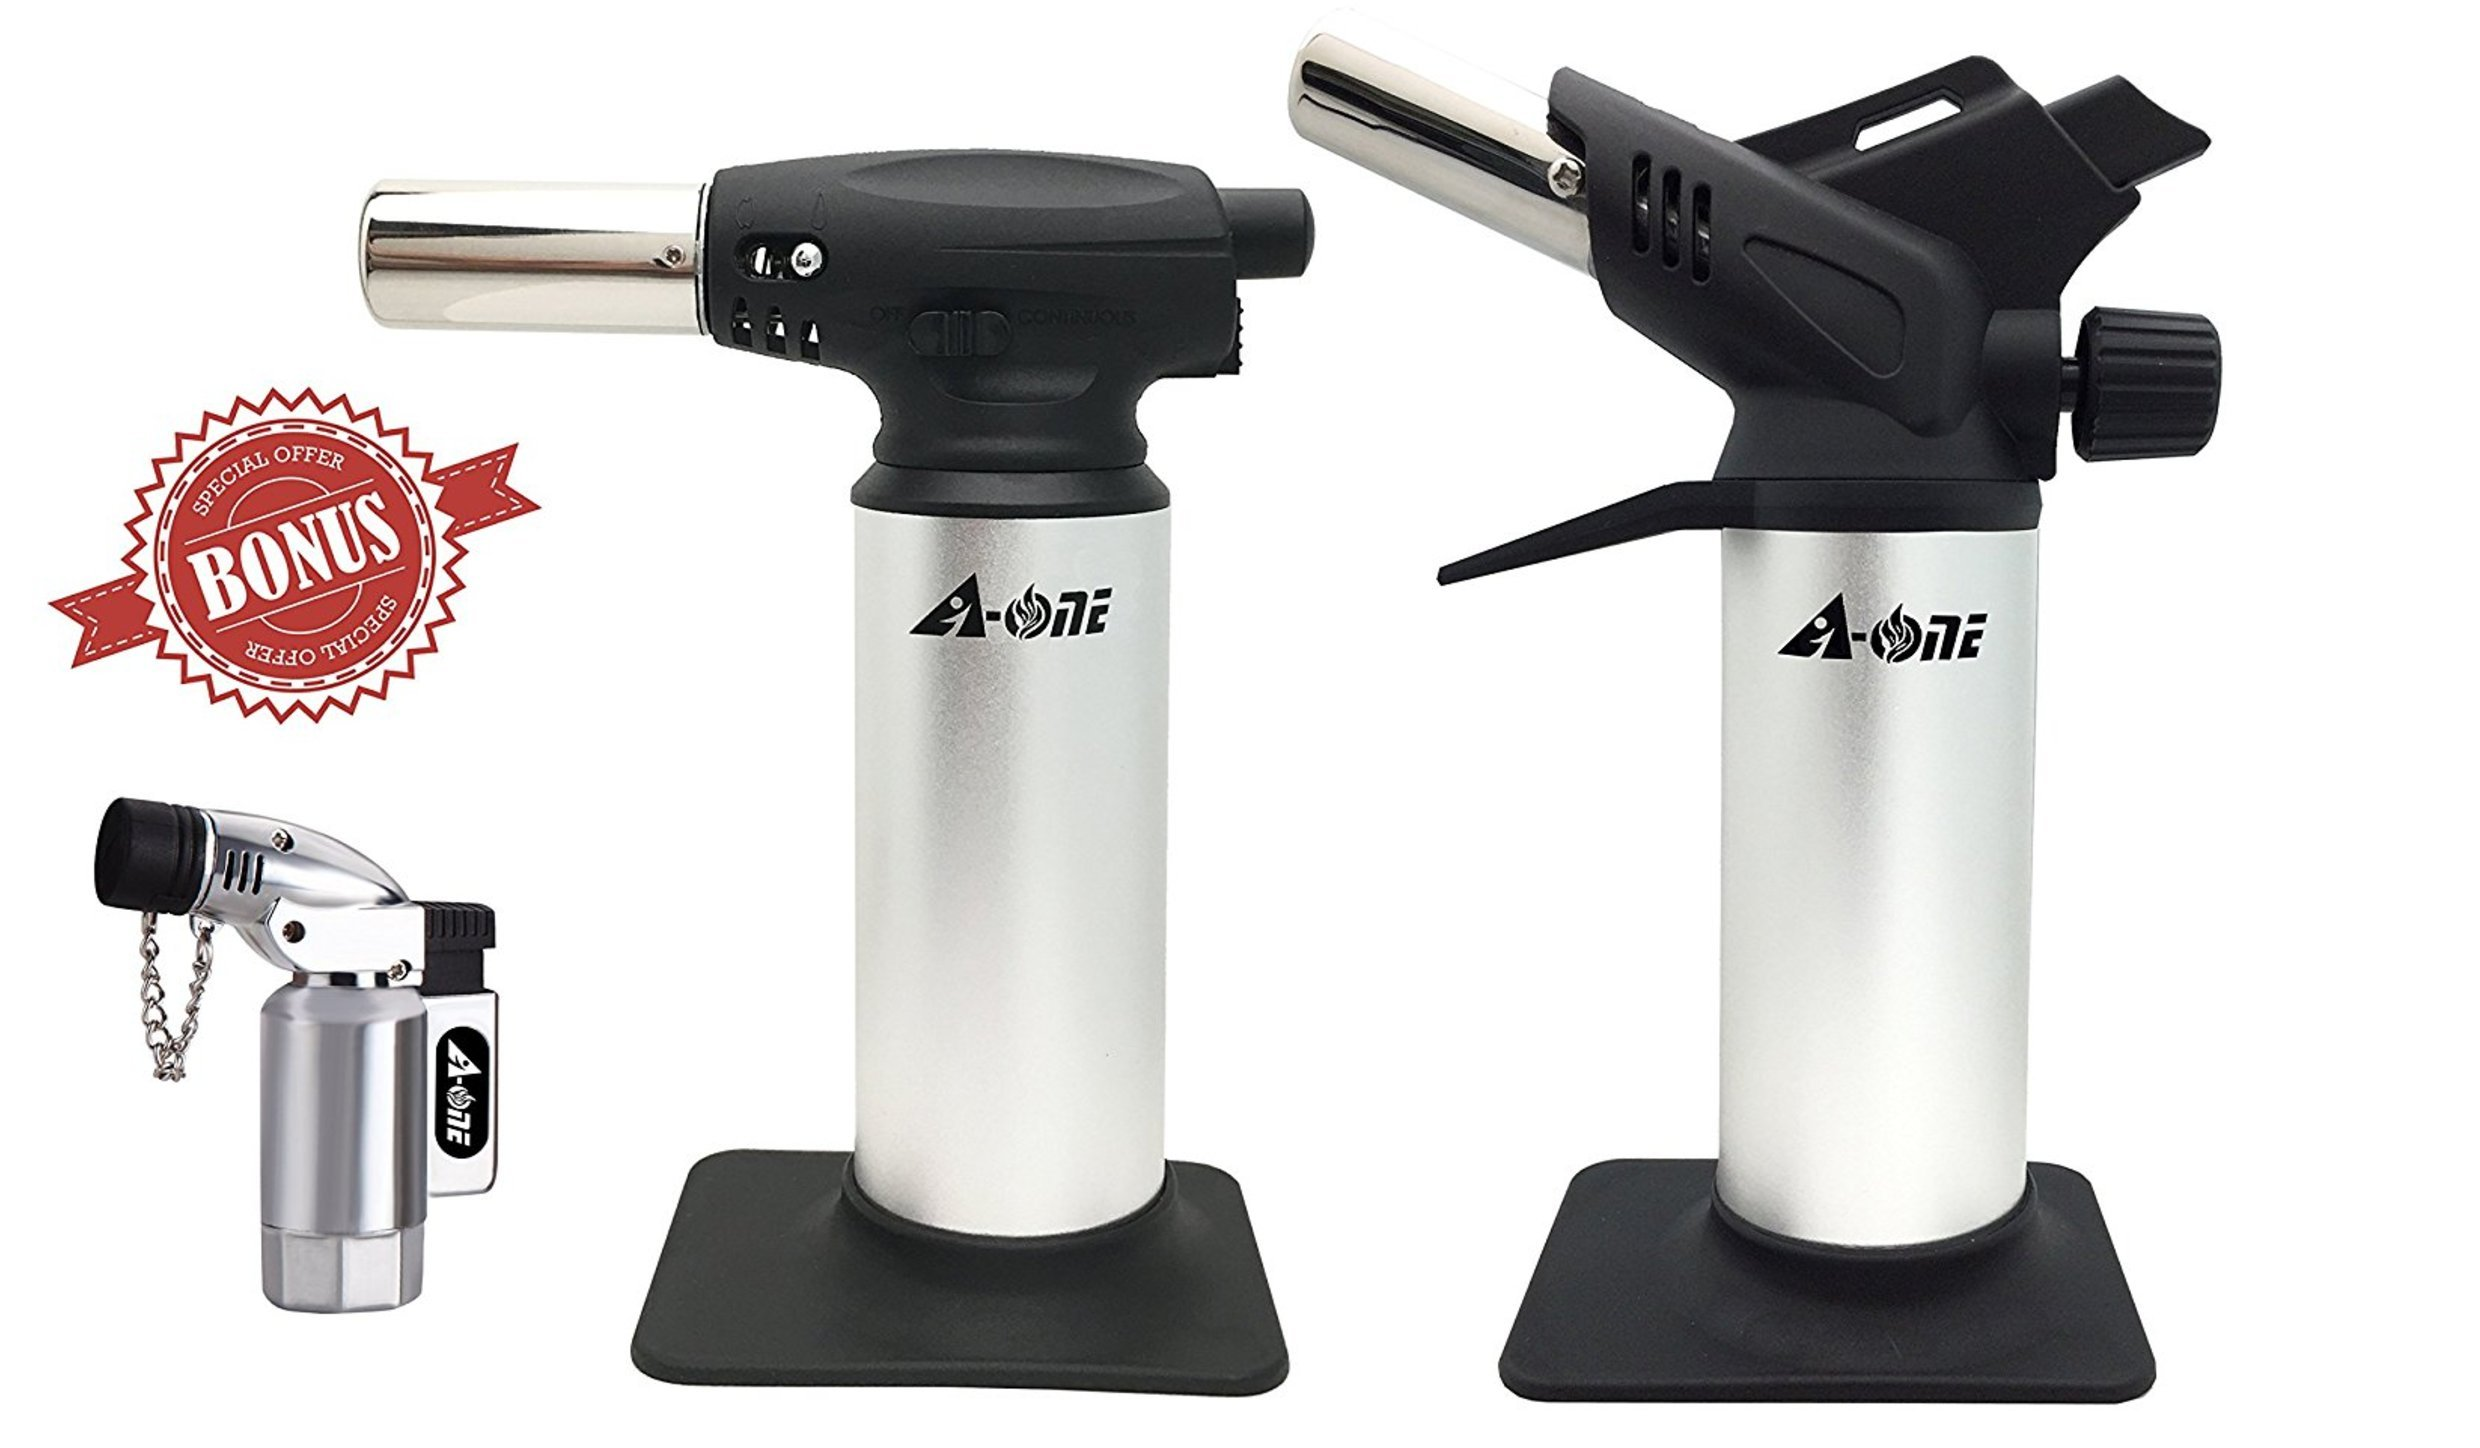 A-ONE GAS TOOL Butane Brazing Torch-Blow Torch-1 Double Flame Gas Torch and 1 Sigle Flame Blow Torch with 1 Free Torch Lighter (3 in 1 Pack)